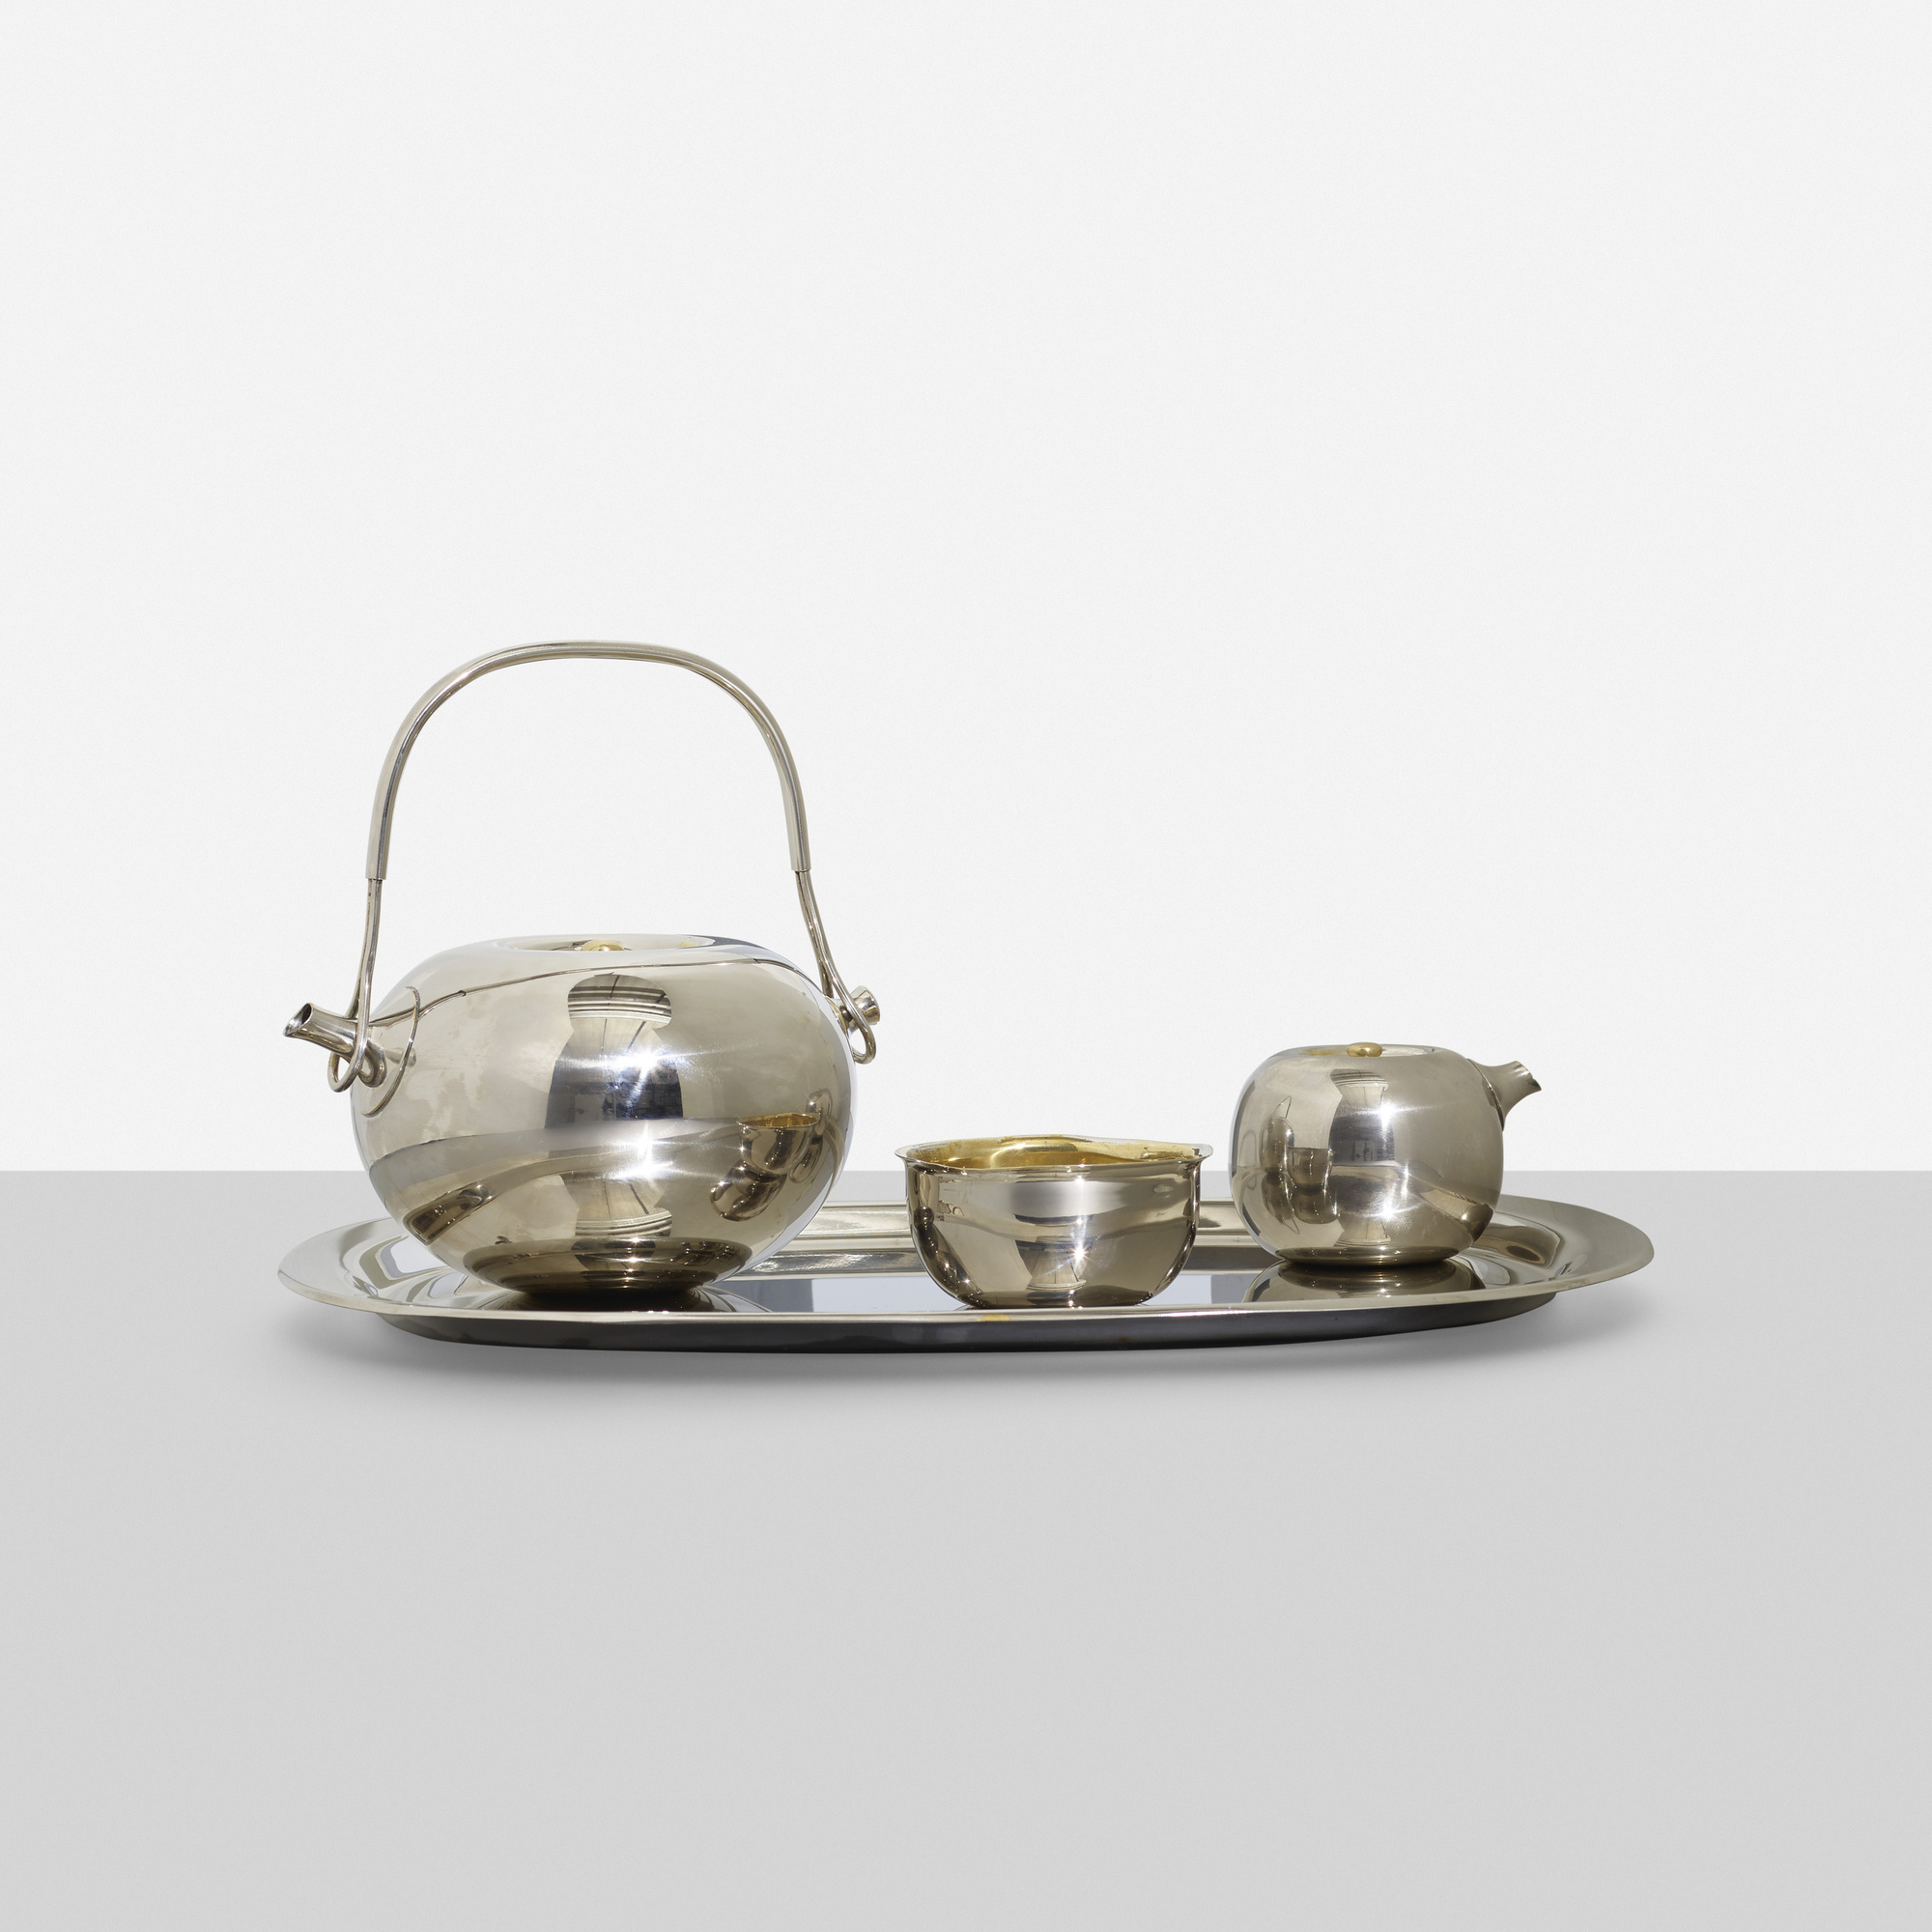 196: Vivianna Torun Bülow-Hübe / tea service (3 of 3)